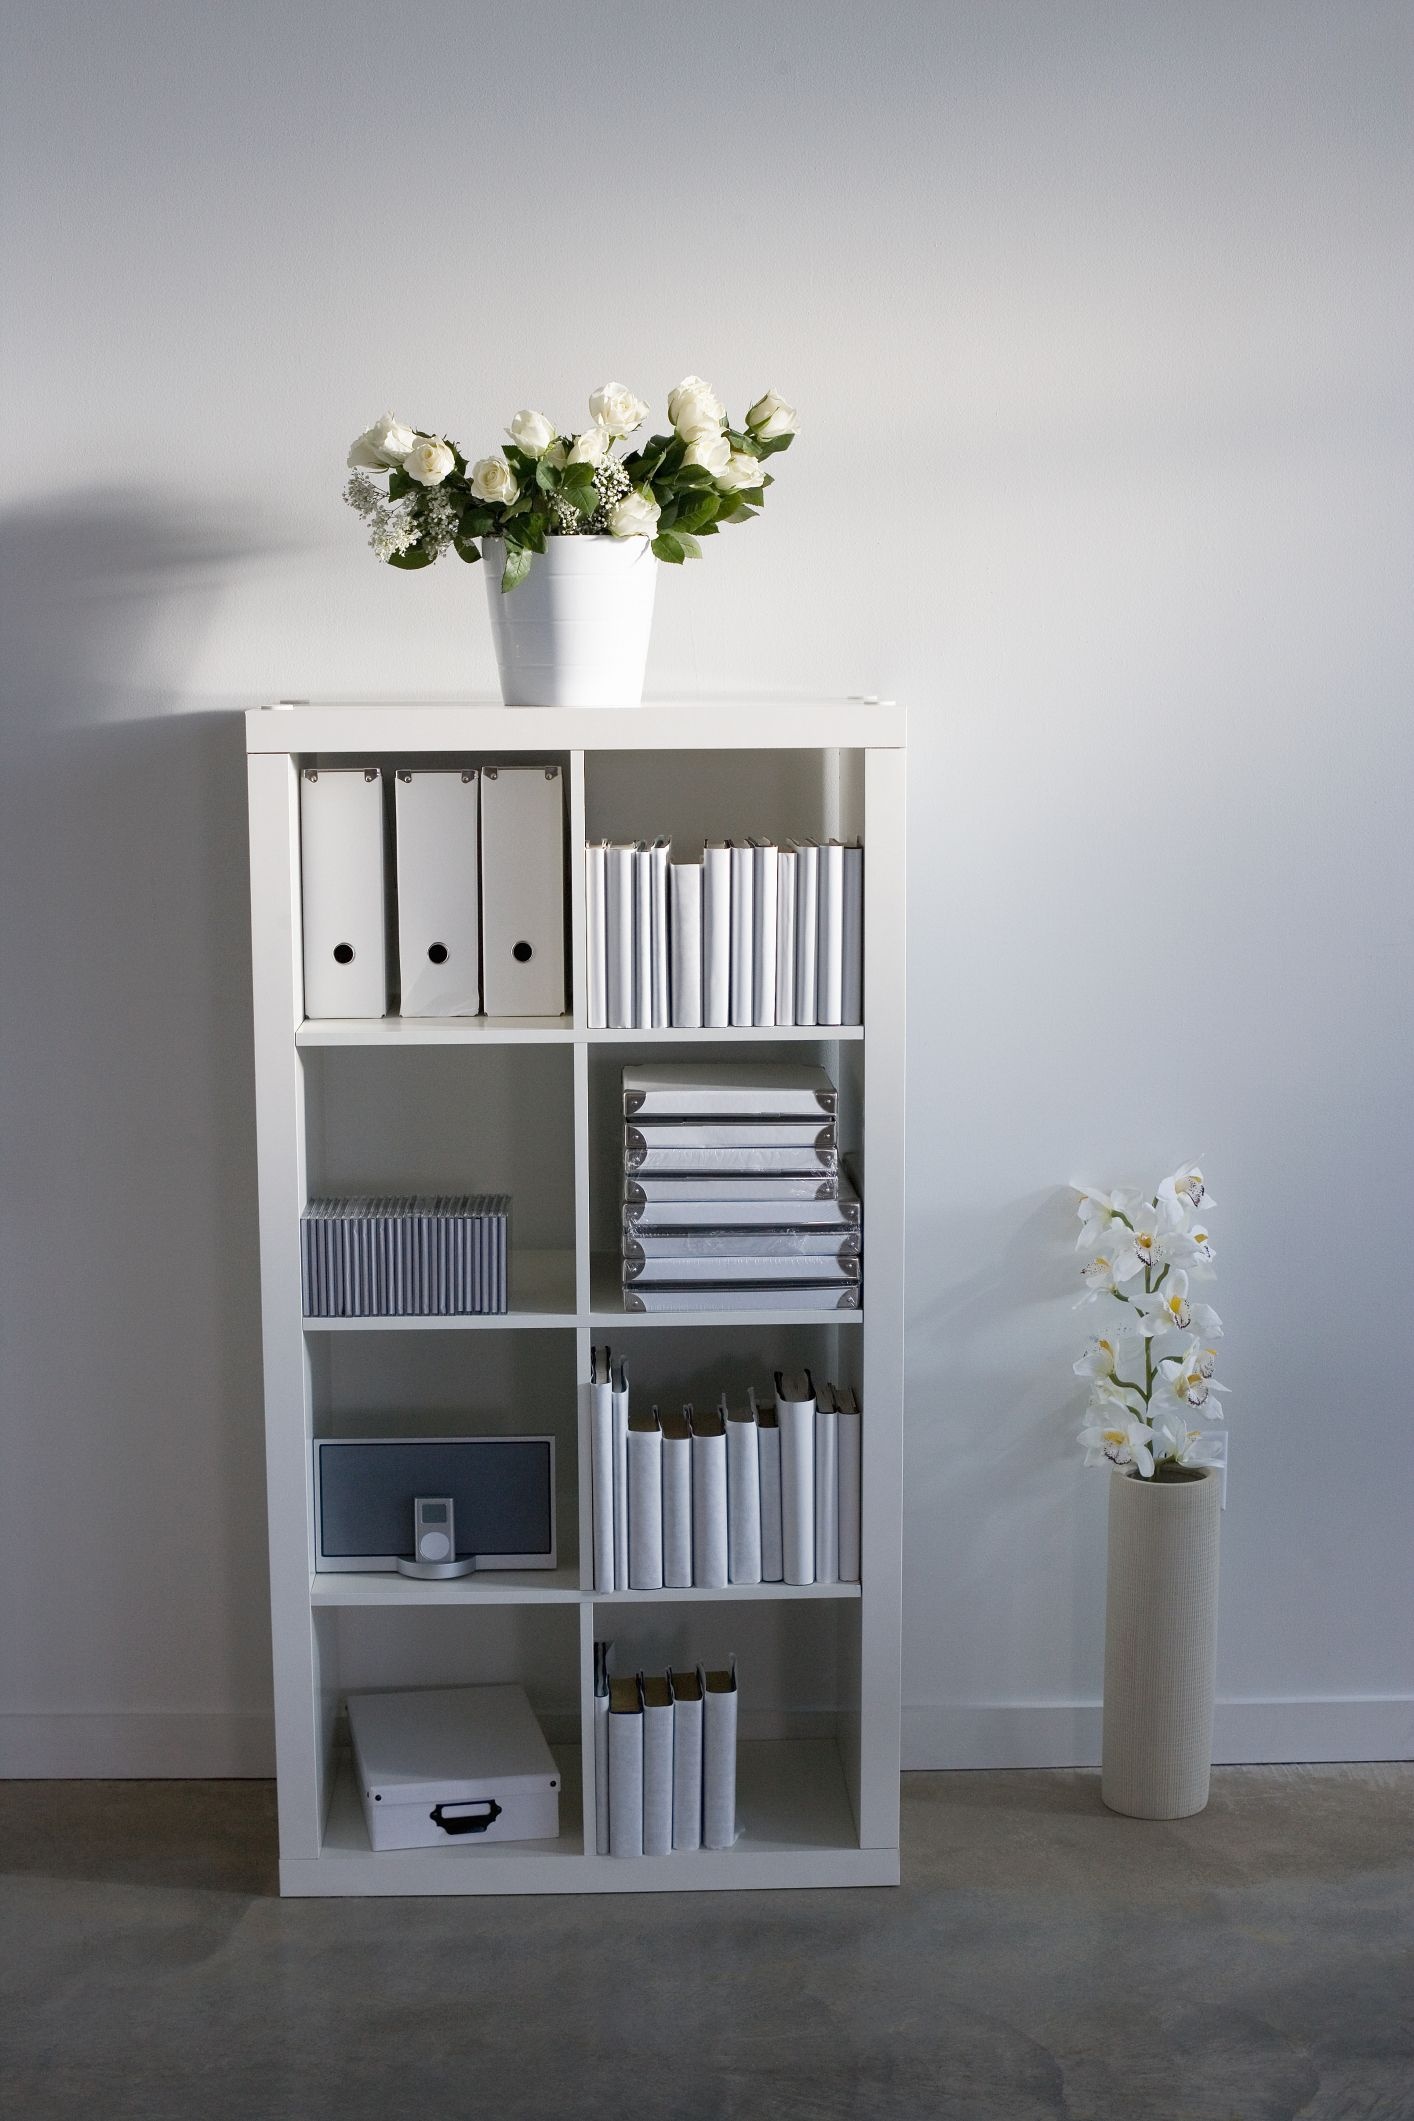 how to build a platform bed from ready made bookshelves stuff i rh pinterest com ready made shelves for timber sheds ready made shelves for cupboards